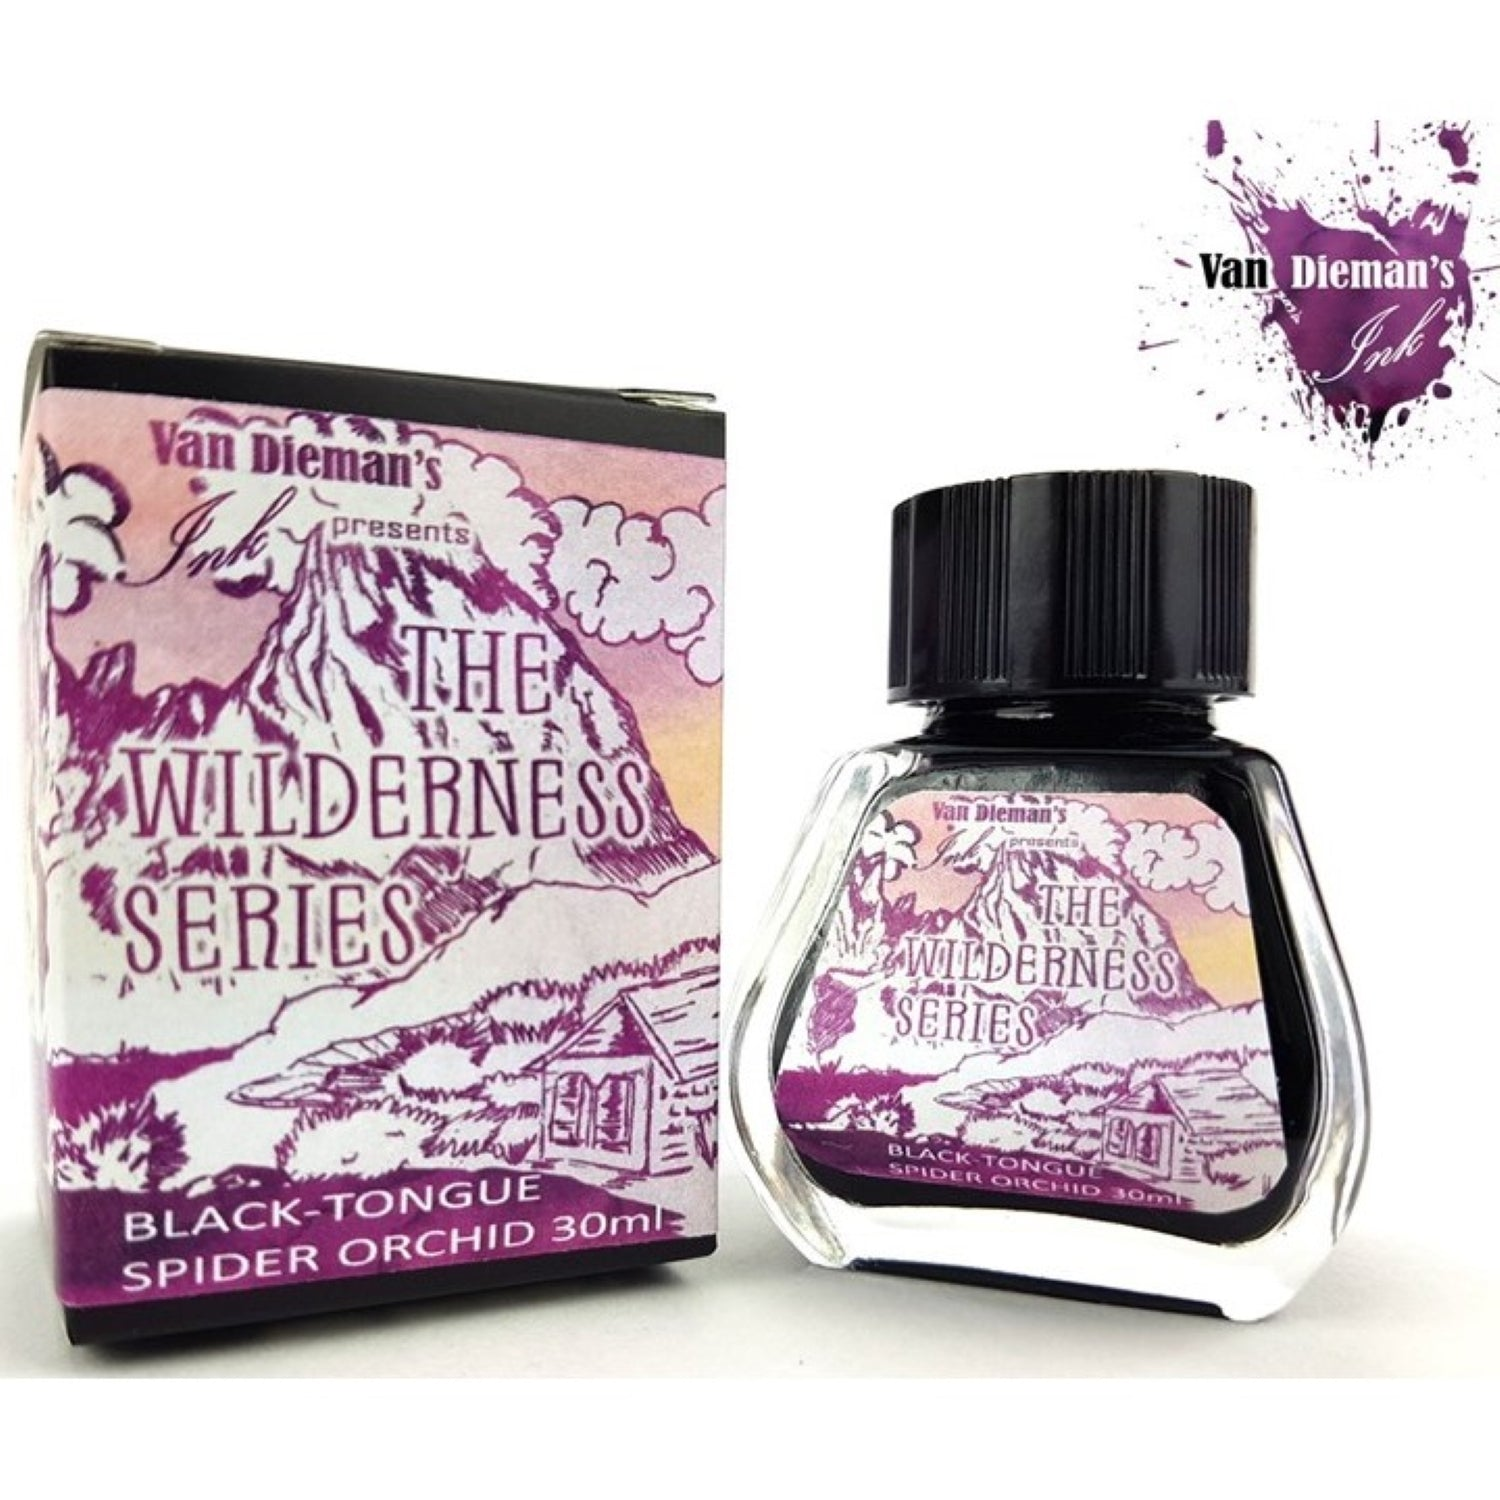 Van Diemans The Wilderness Series Black-Tongue Spider Orchid Ink 30ml